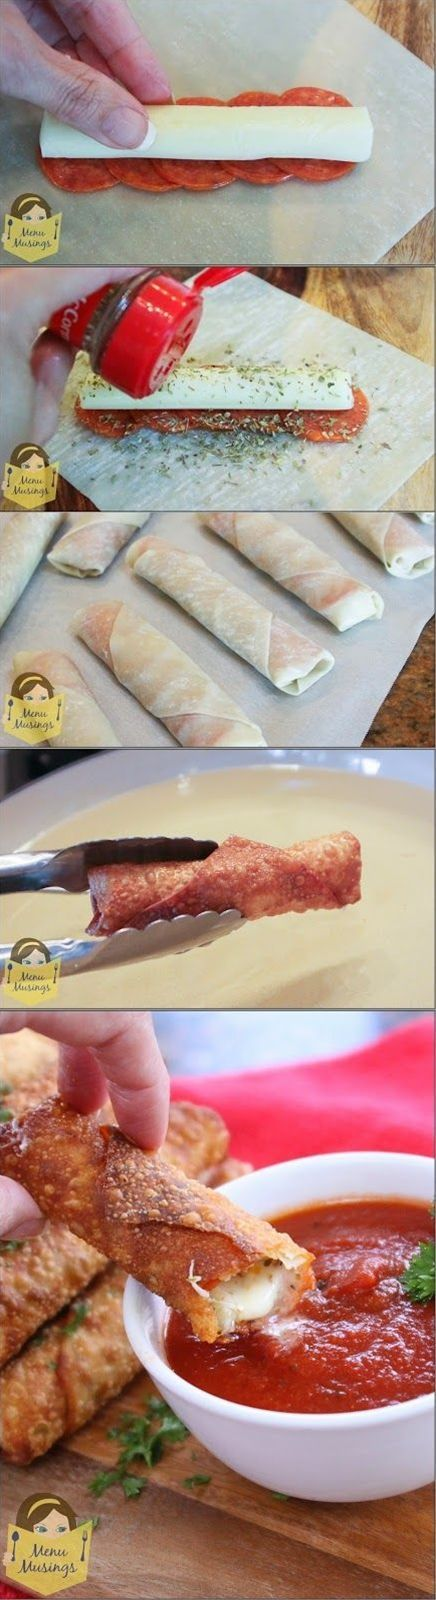 Ingredients: Eggroll wrappers, Pepperoni slices, Mozzarella string cheese, Dried oregano, Peanut oil for frying, Pizza sauce for serving.